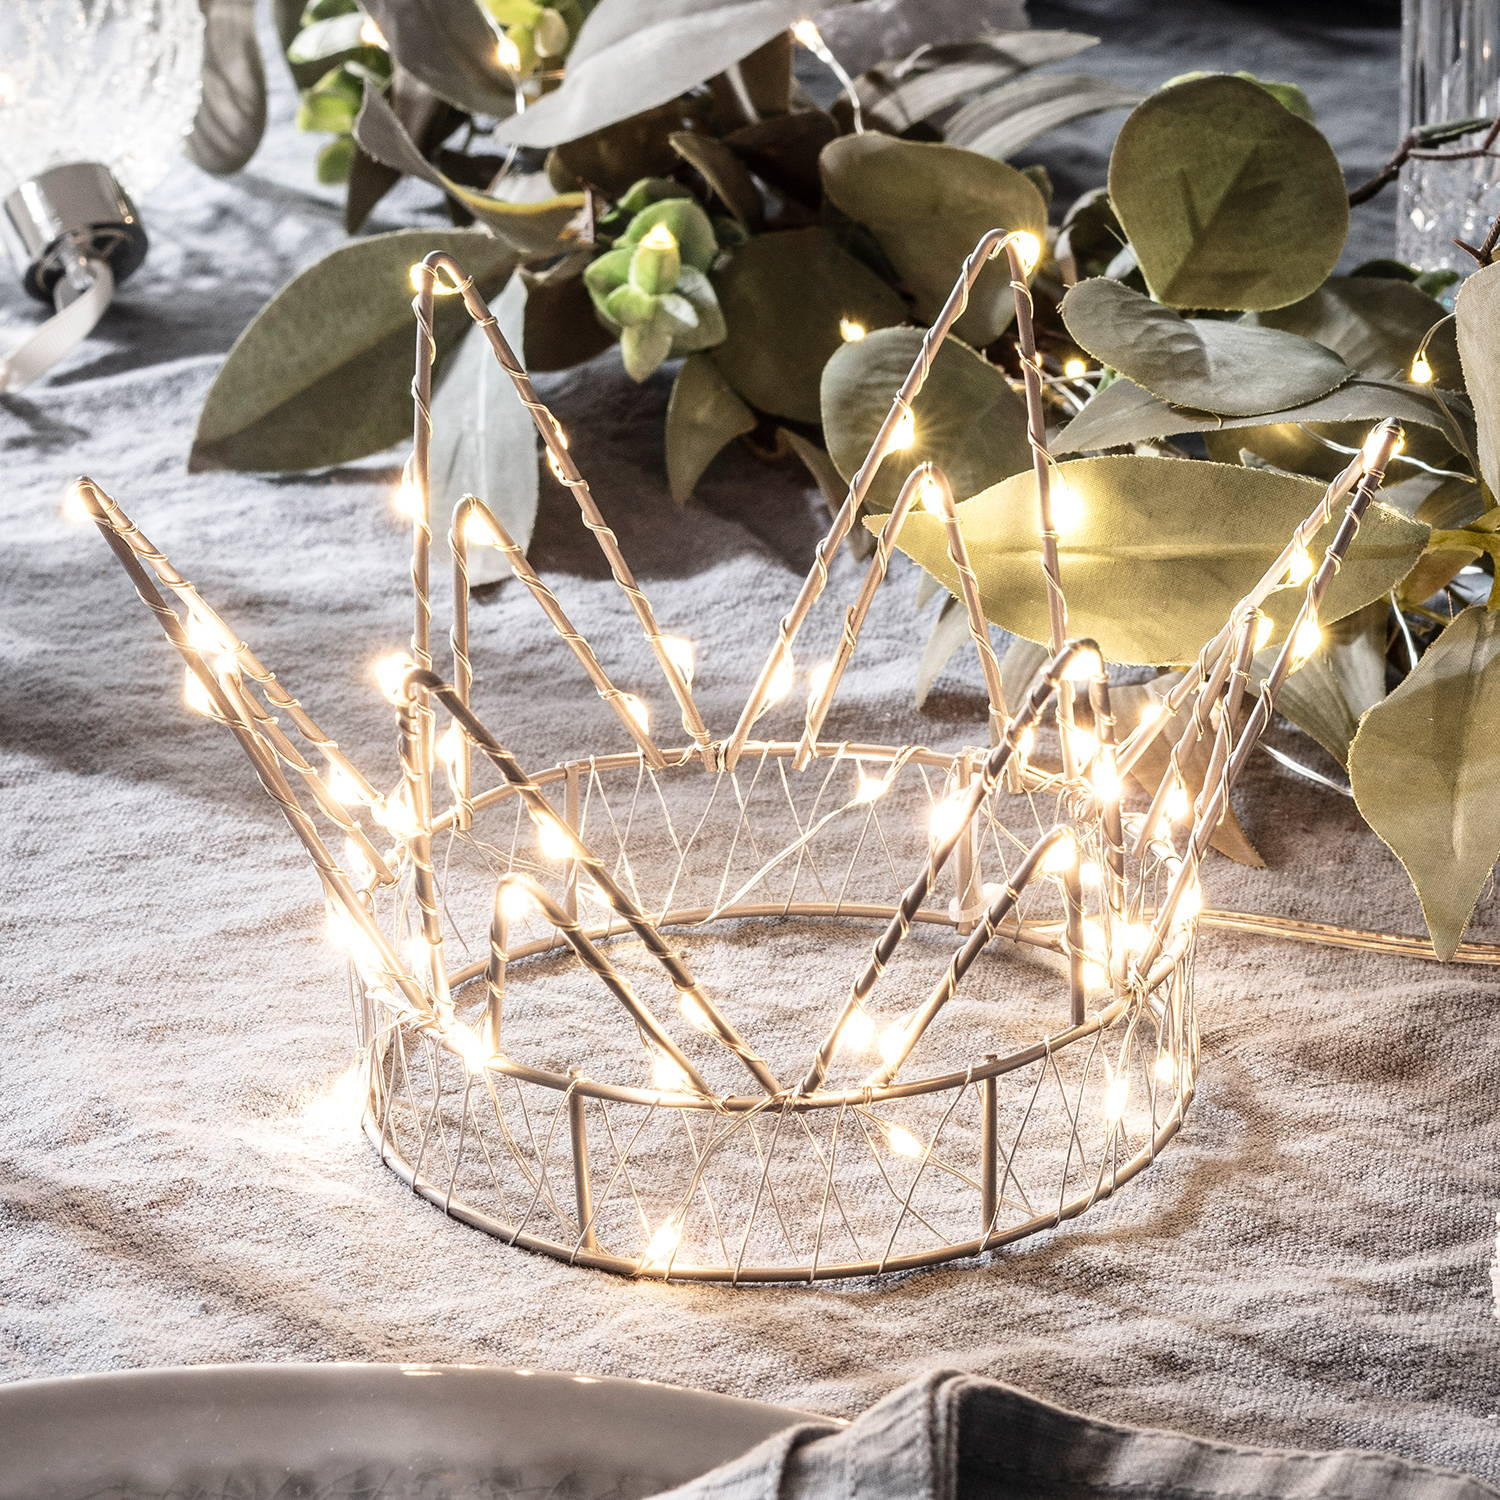 Micro LED crown Christmas decoration placed on top of a table